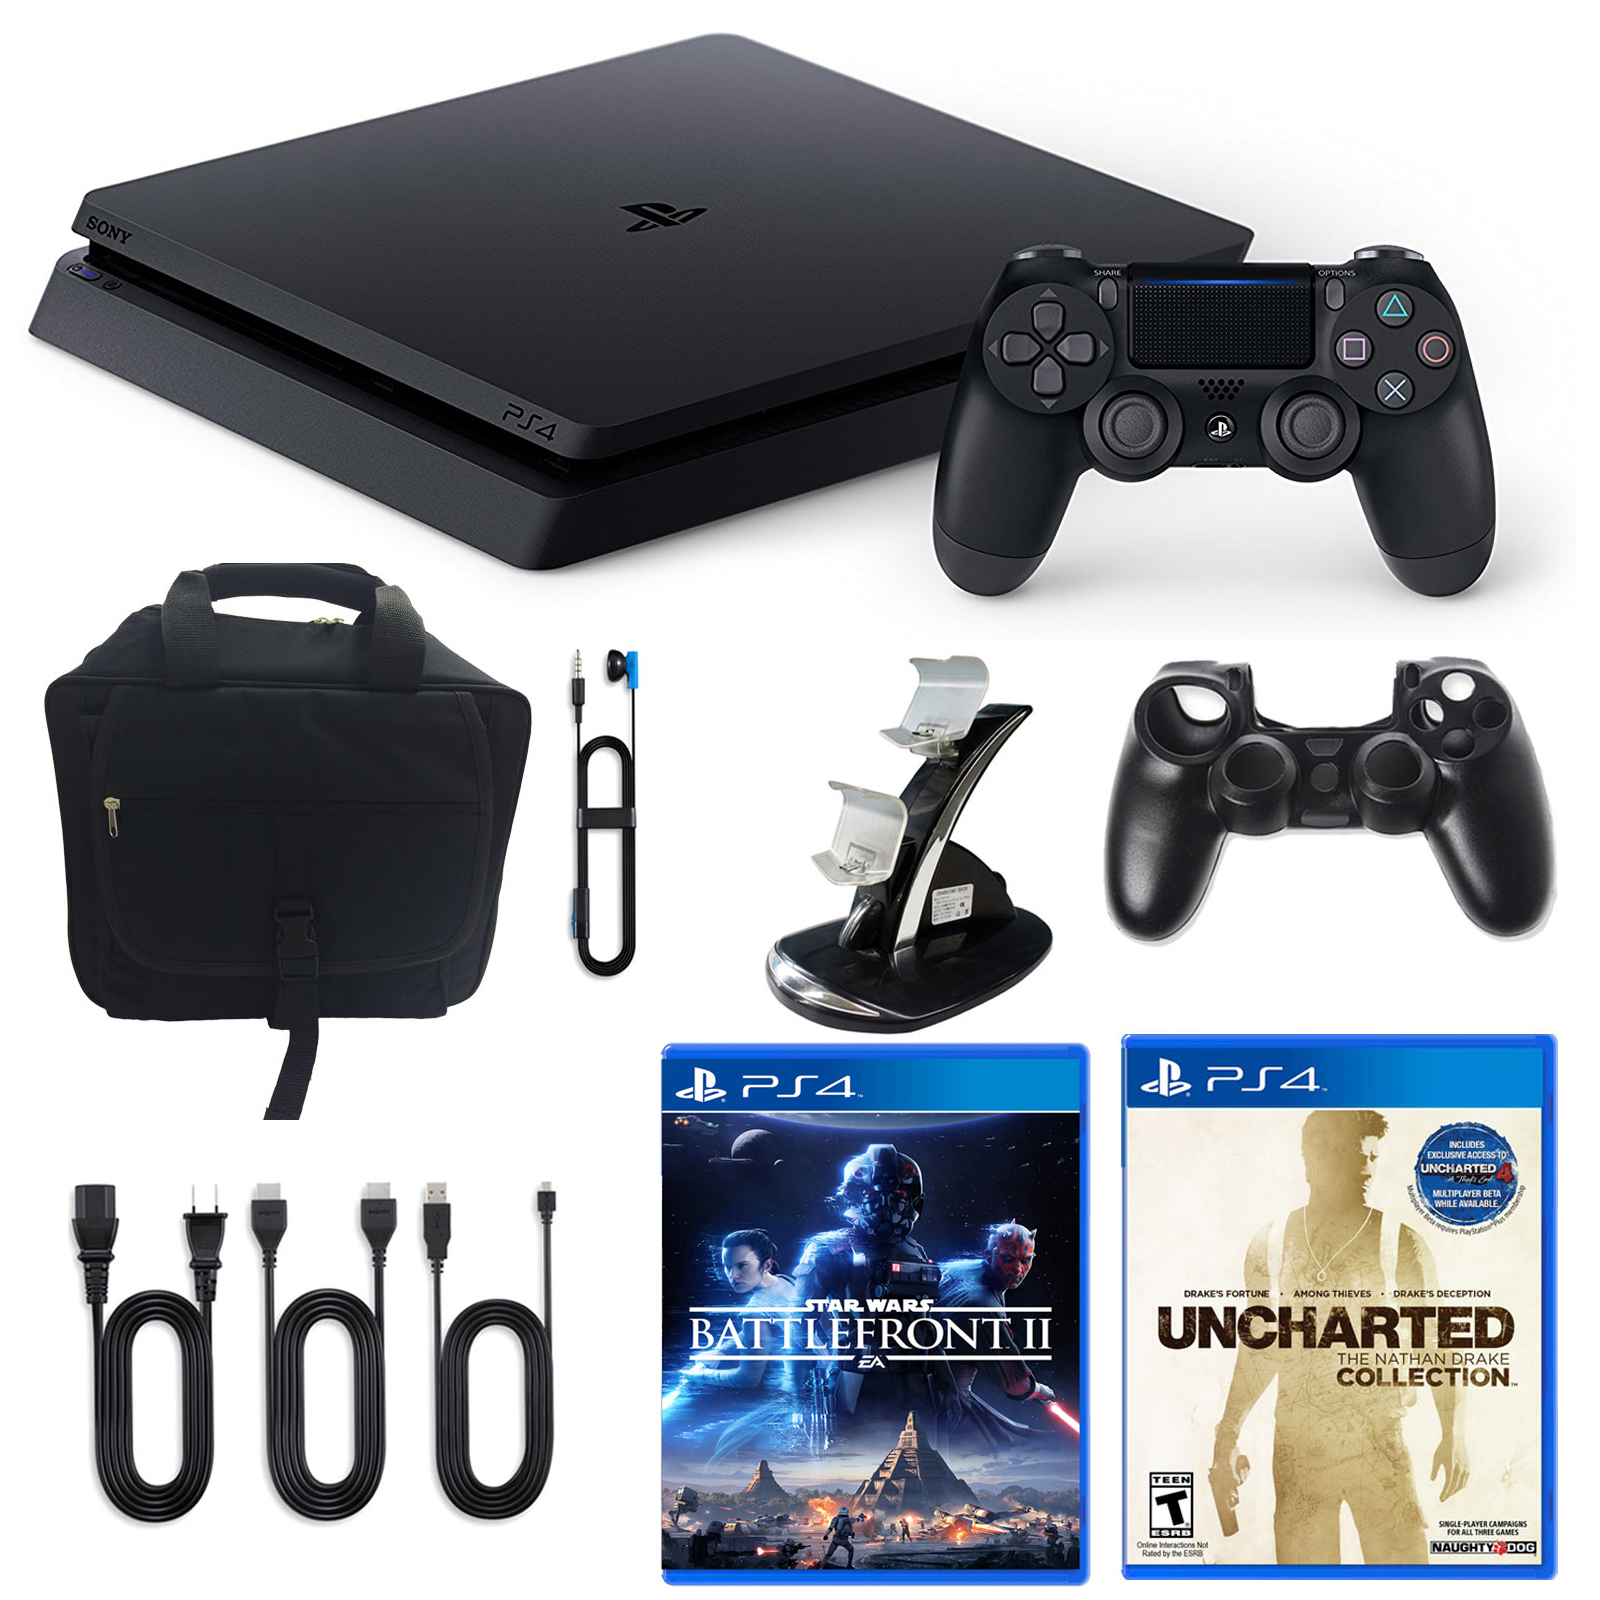 Playstation 4 1TB Limited Edition Star Wars Console with Nathan Drake Game and Accessories